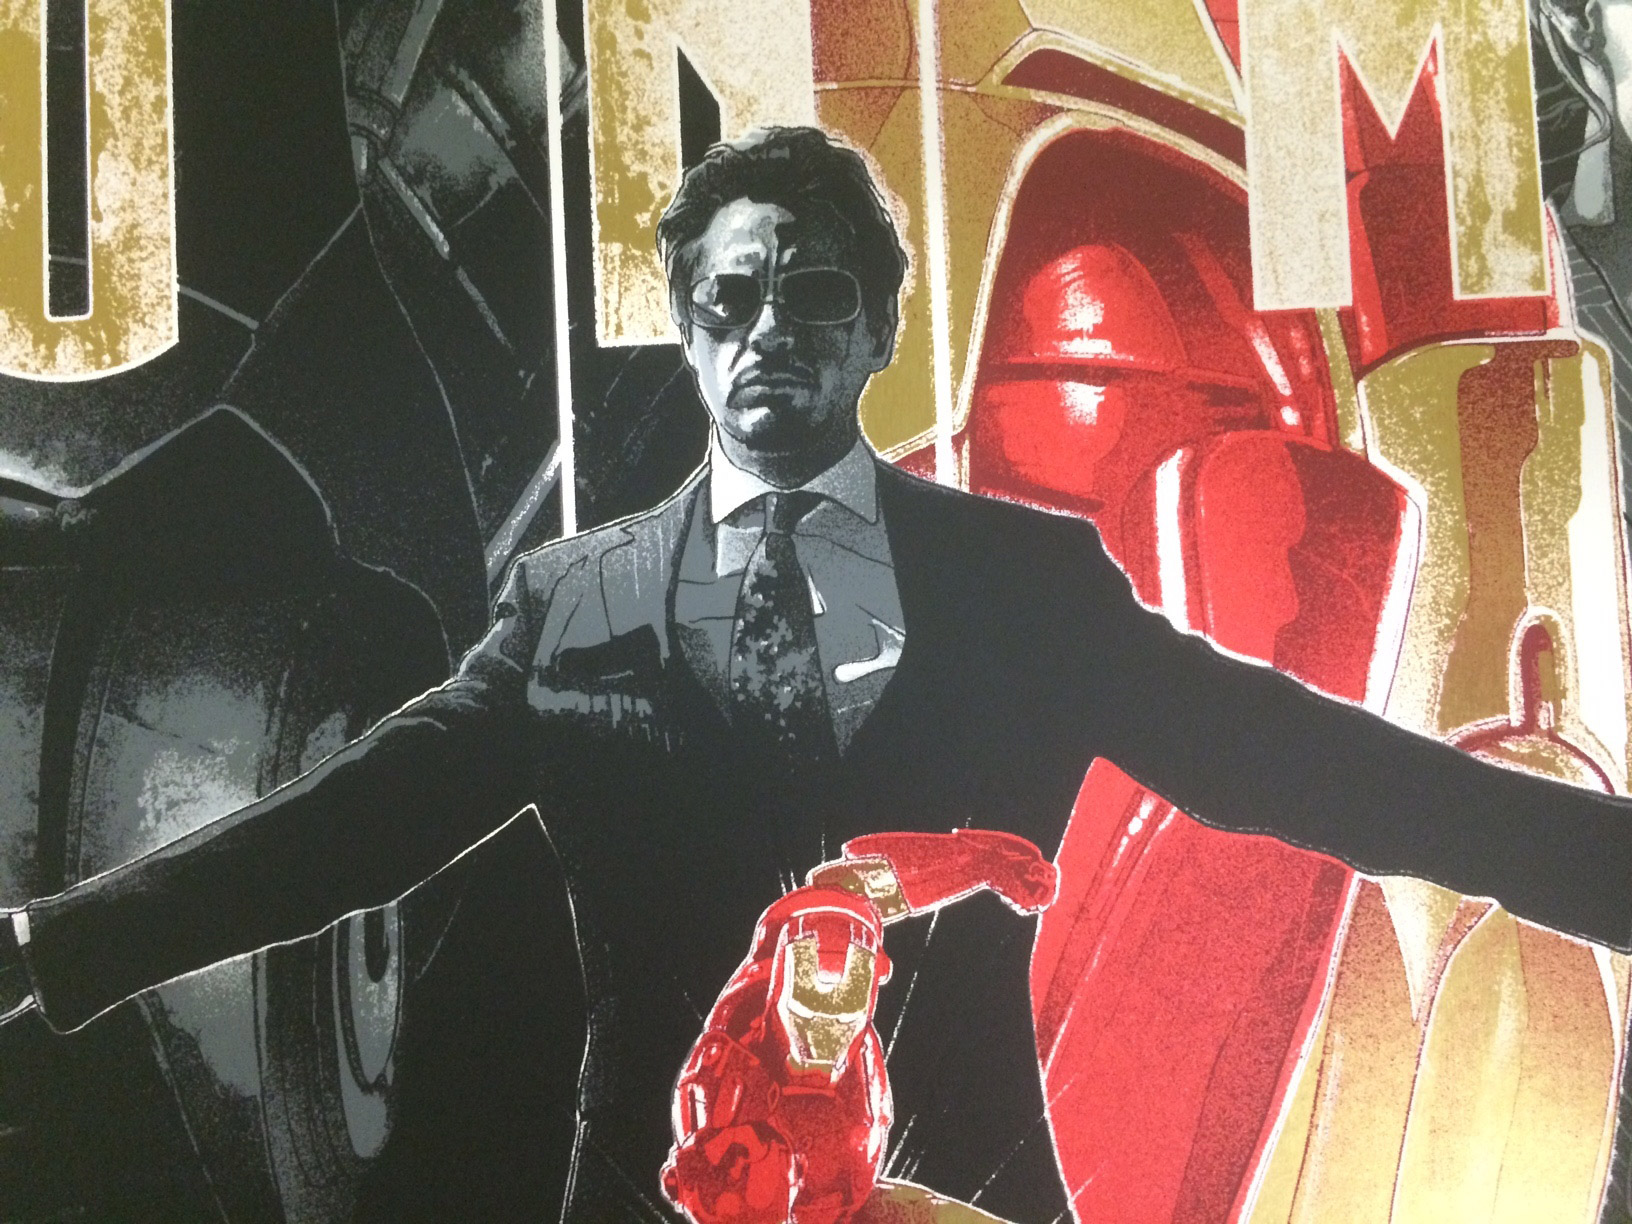 Iron Man Poster Detail 2